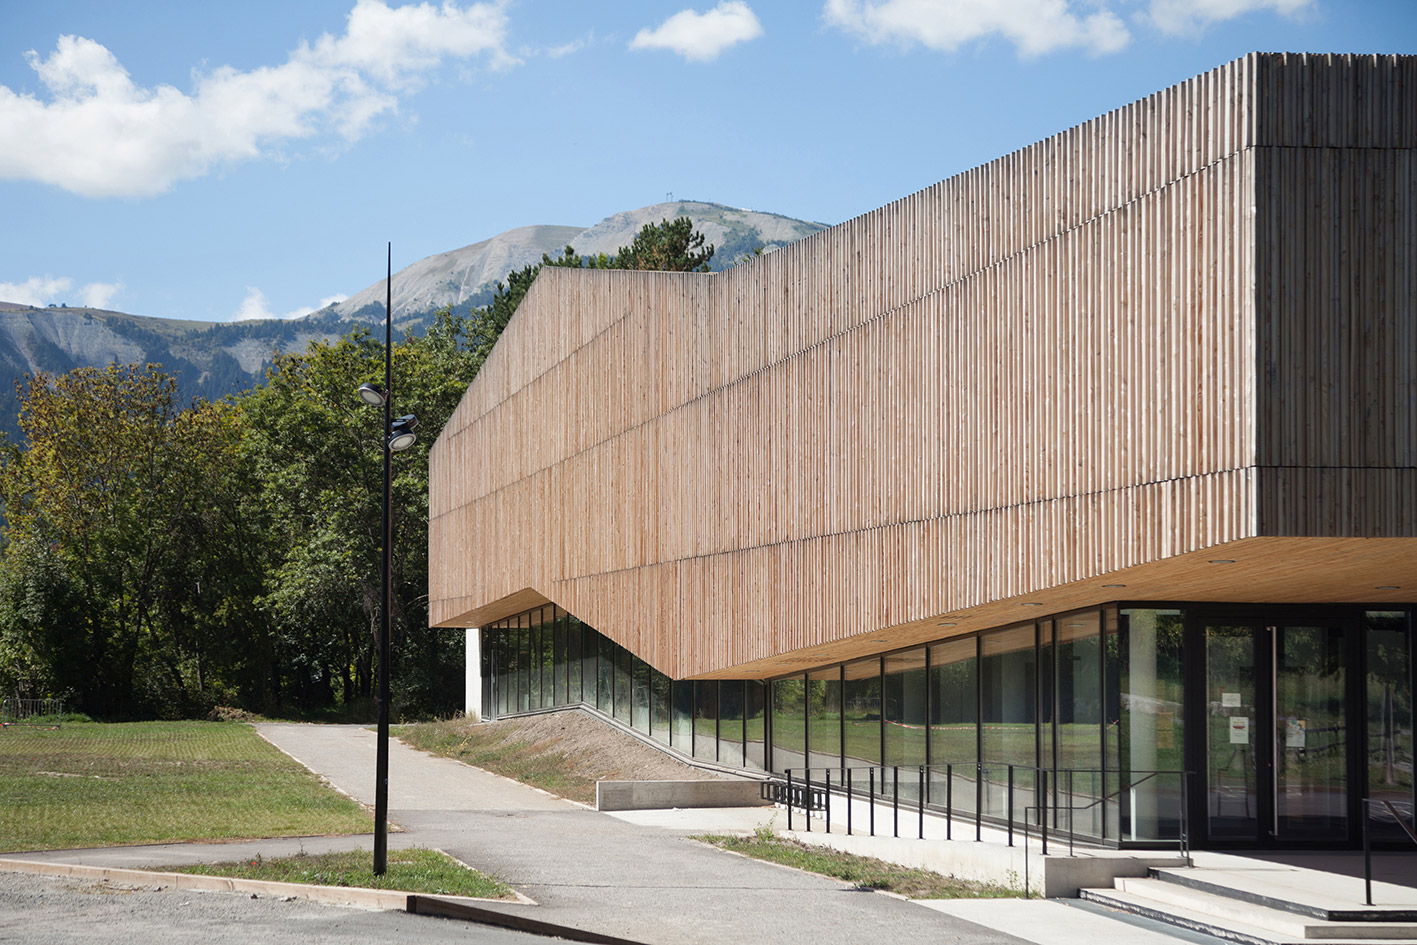 jerome-ricolleau-photographe-architecture-lyon-Composite-grenoble-gymnase-seyne-les-alpes-4